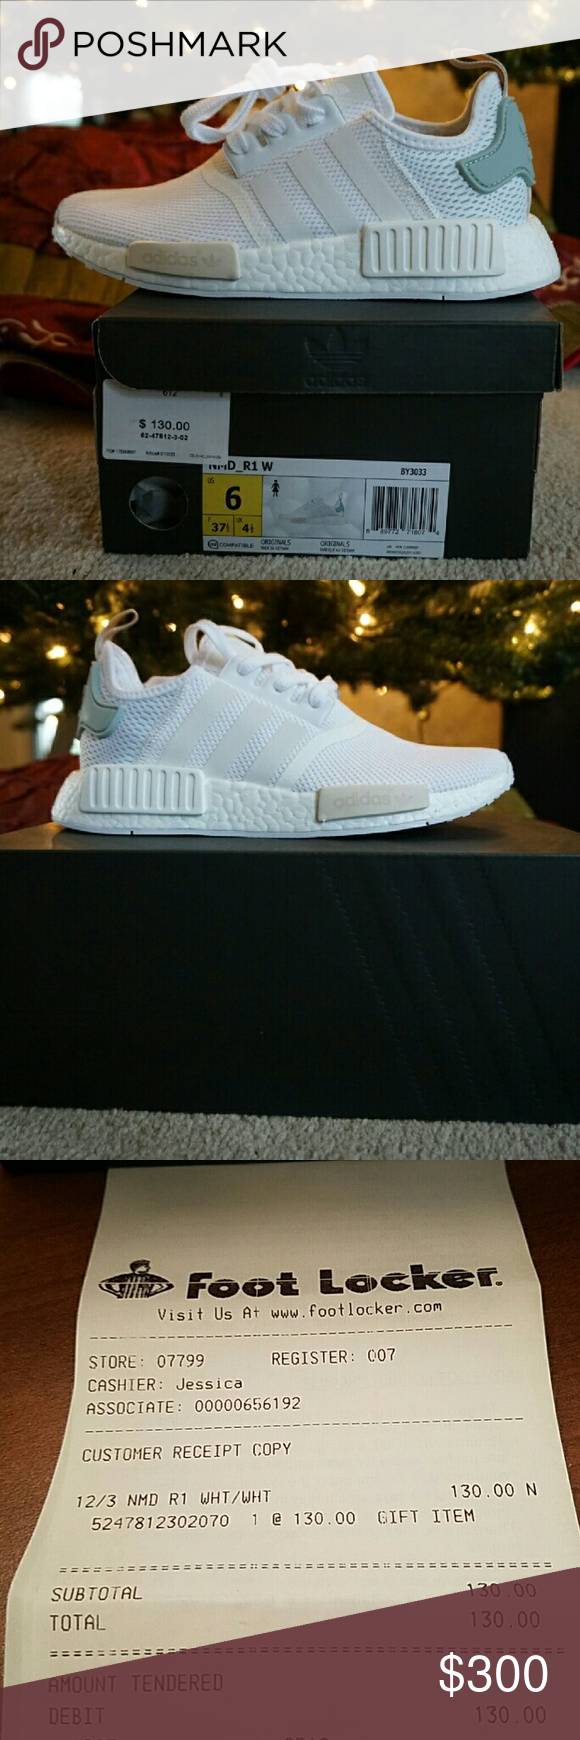 Womens NMD R1 W I work at Lady Footlocker and they are